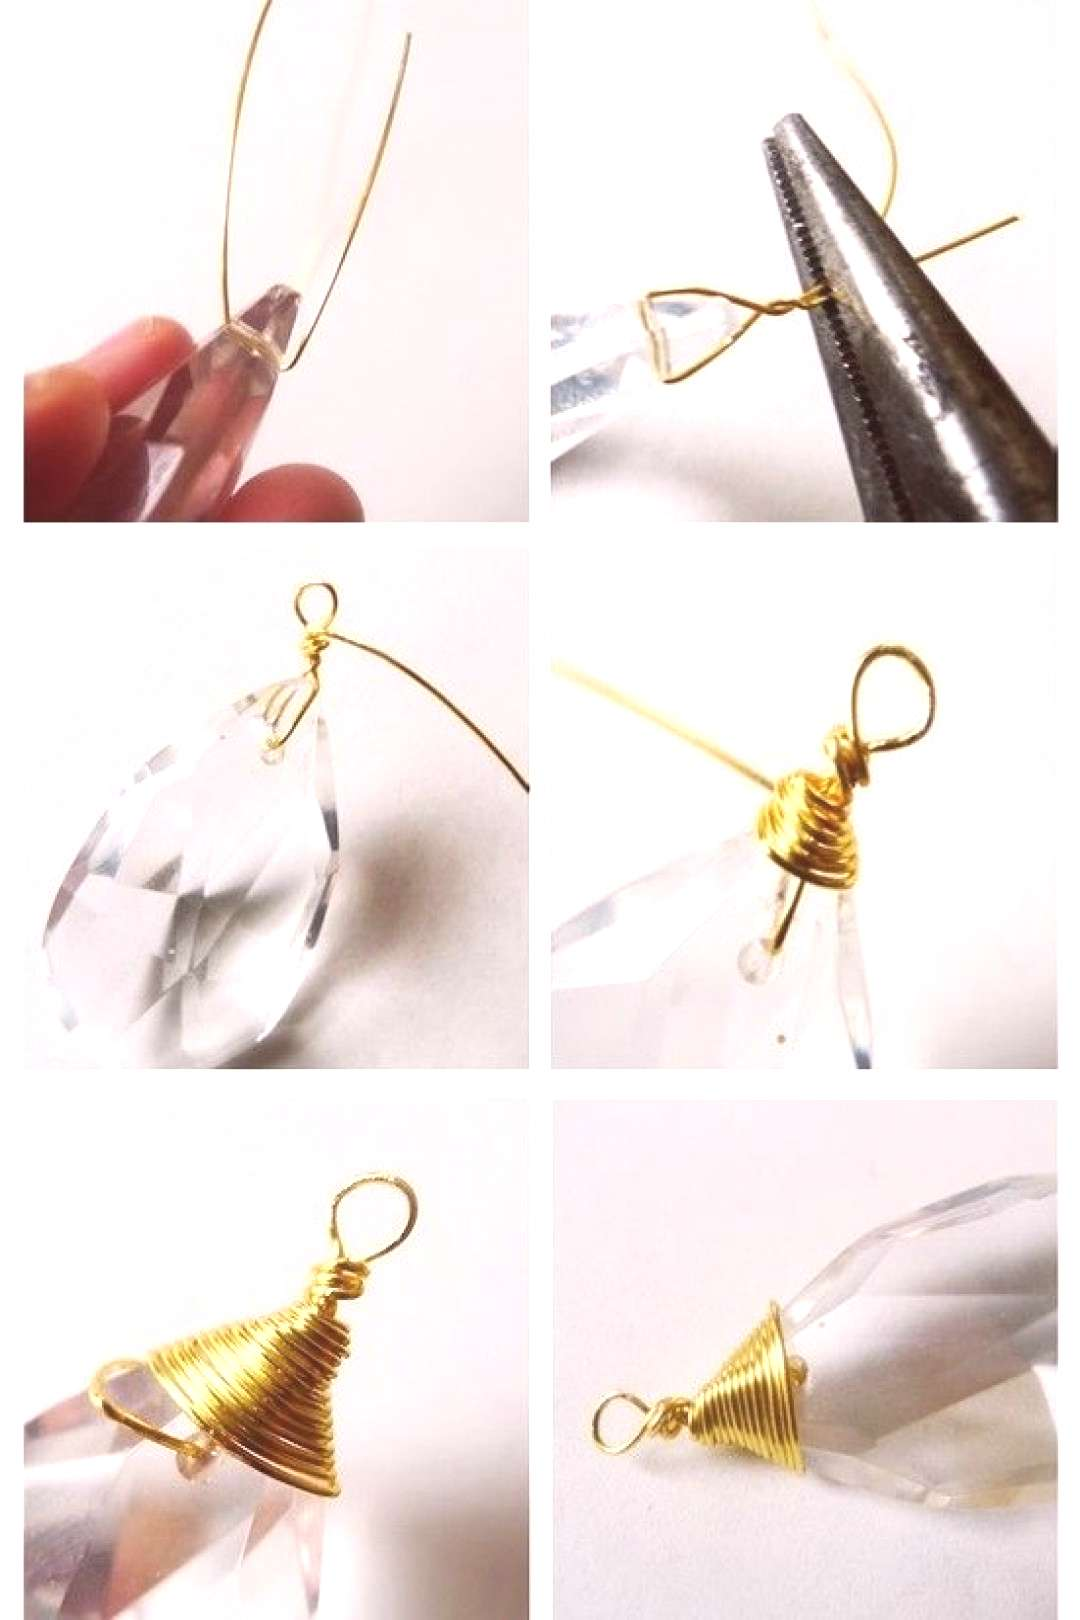 How to make a pendant necklace. Chandelier Pendant Necklace - Step 3